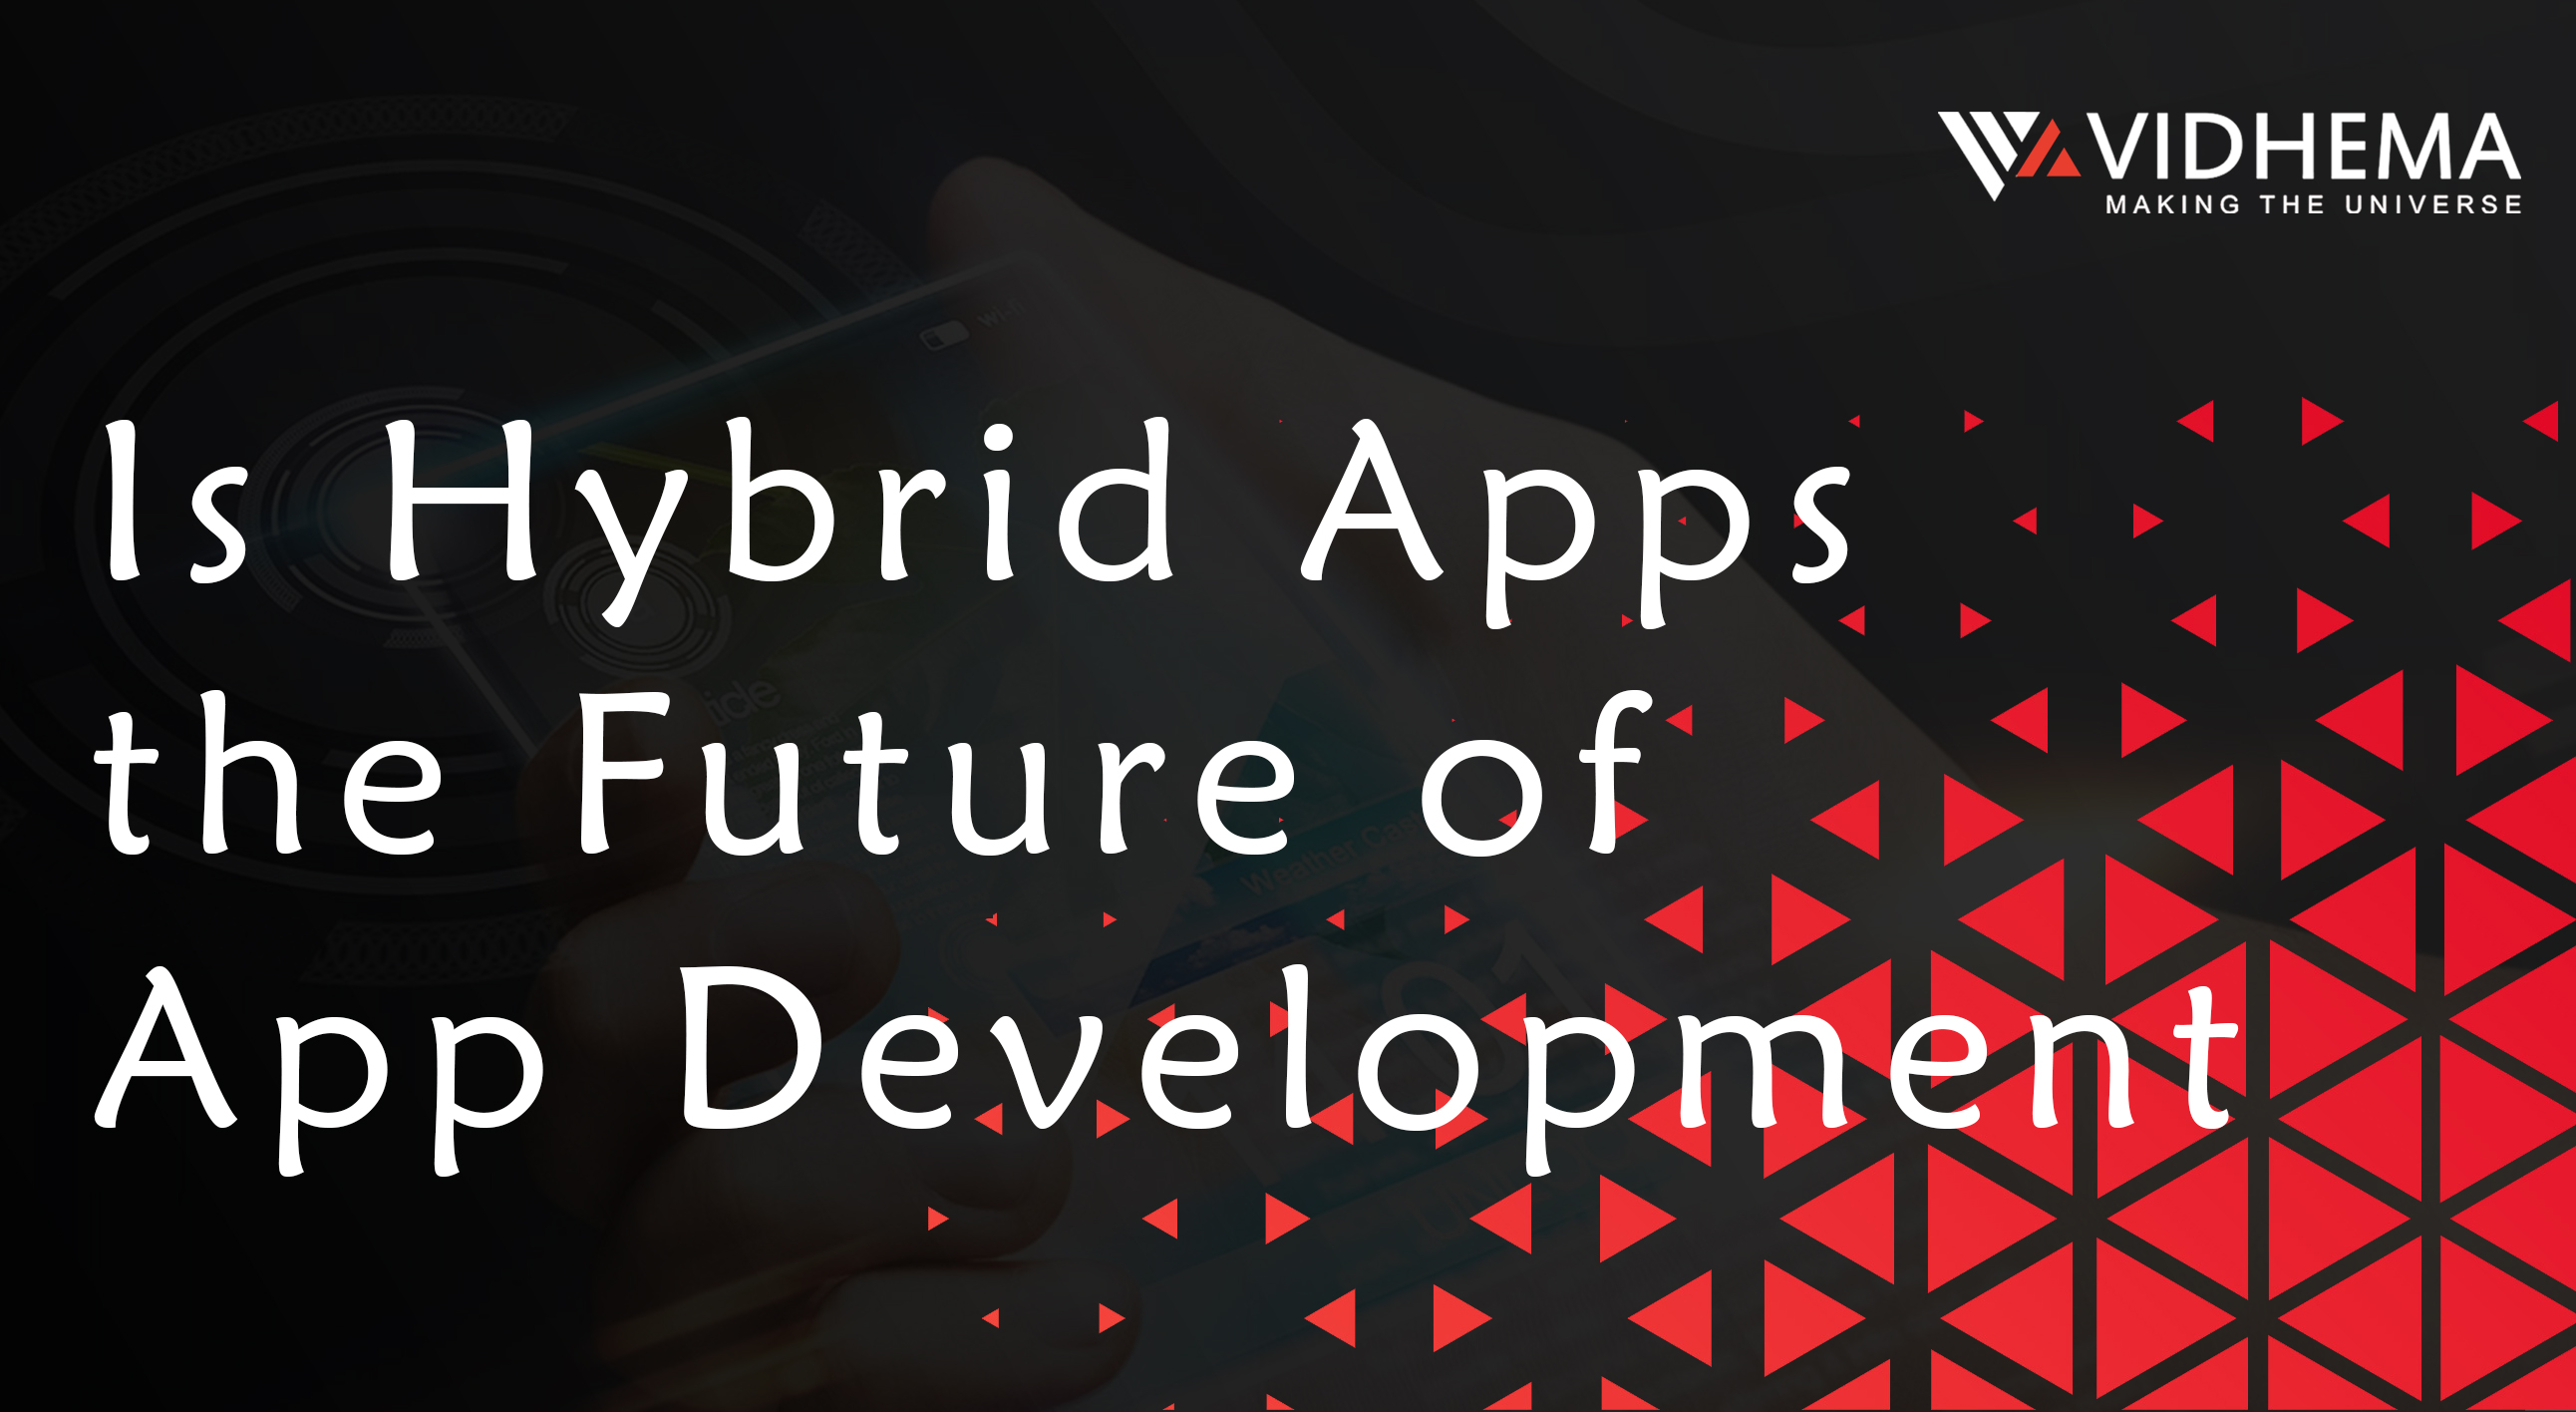 Is Hybrid Apps the Future of App Development?